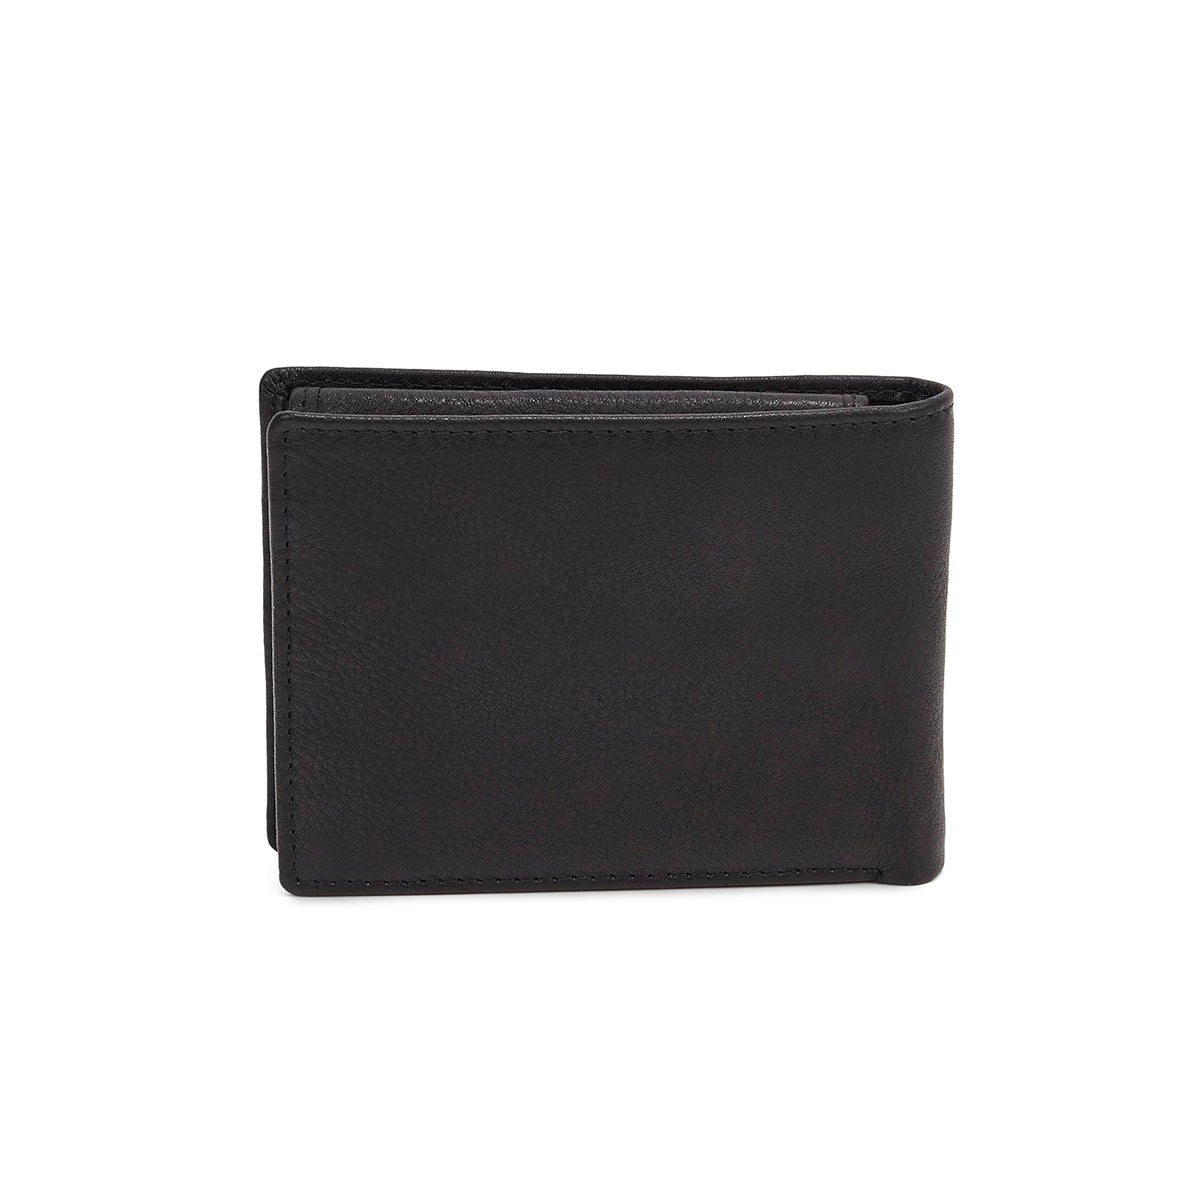 Mns Roots73 RT22654 blk folding wallet